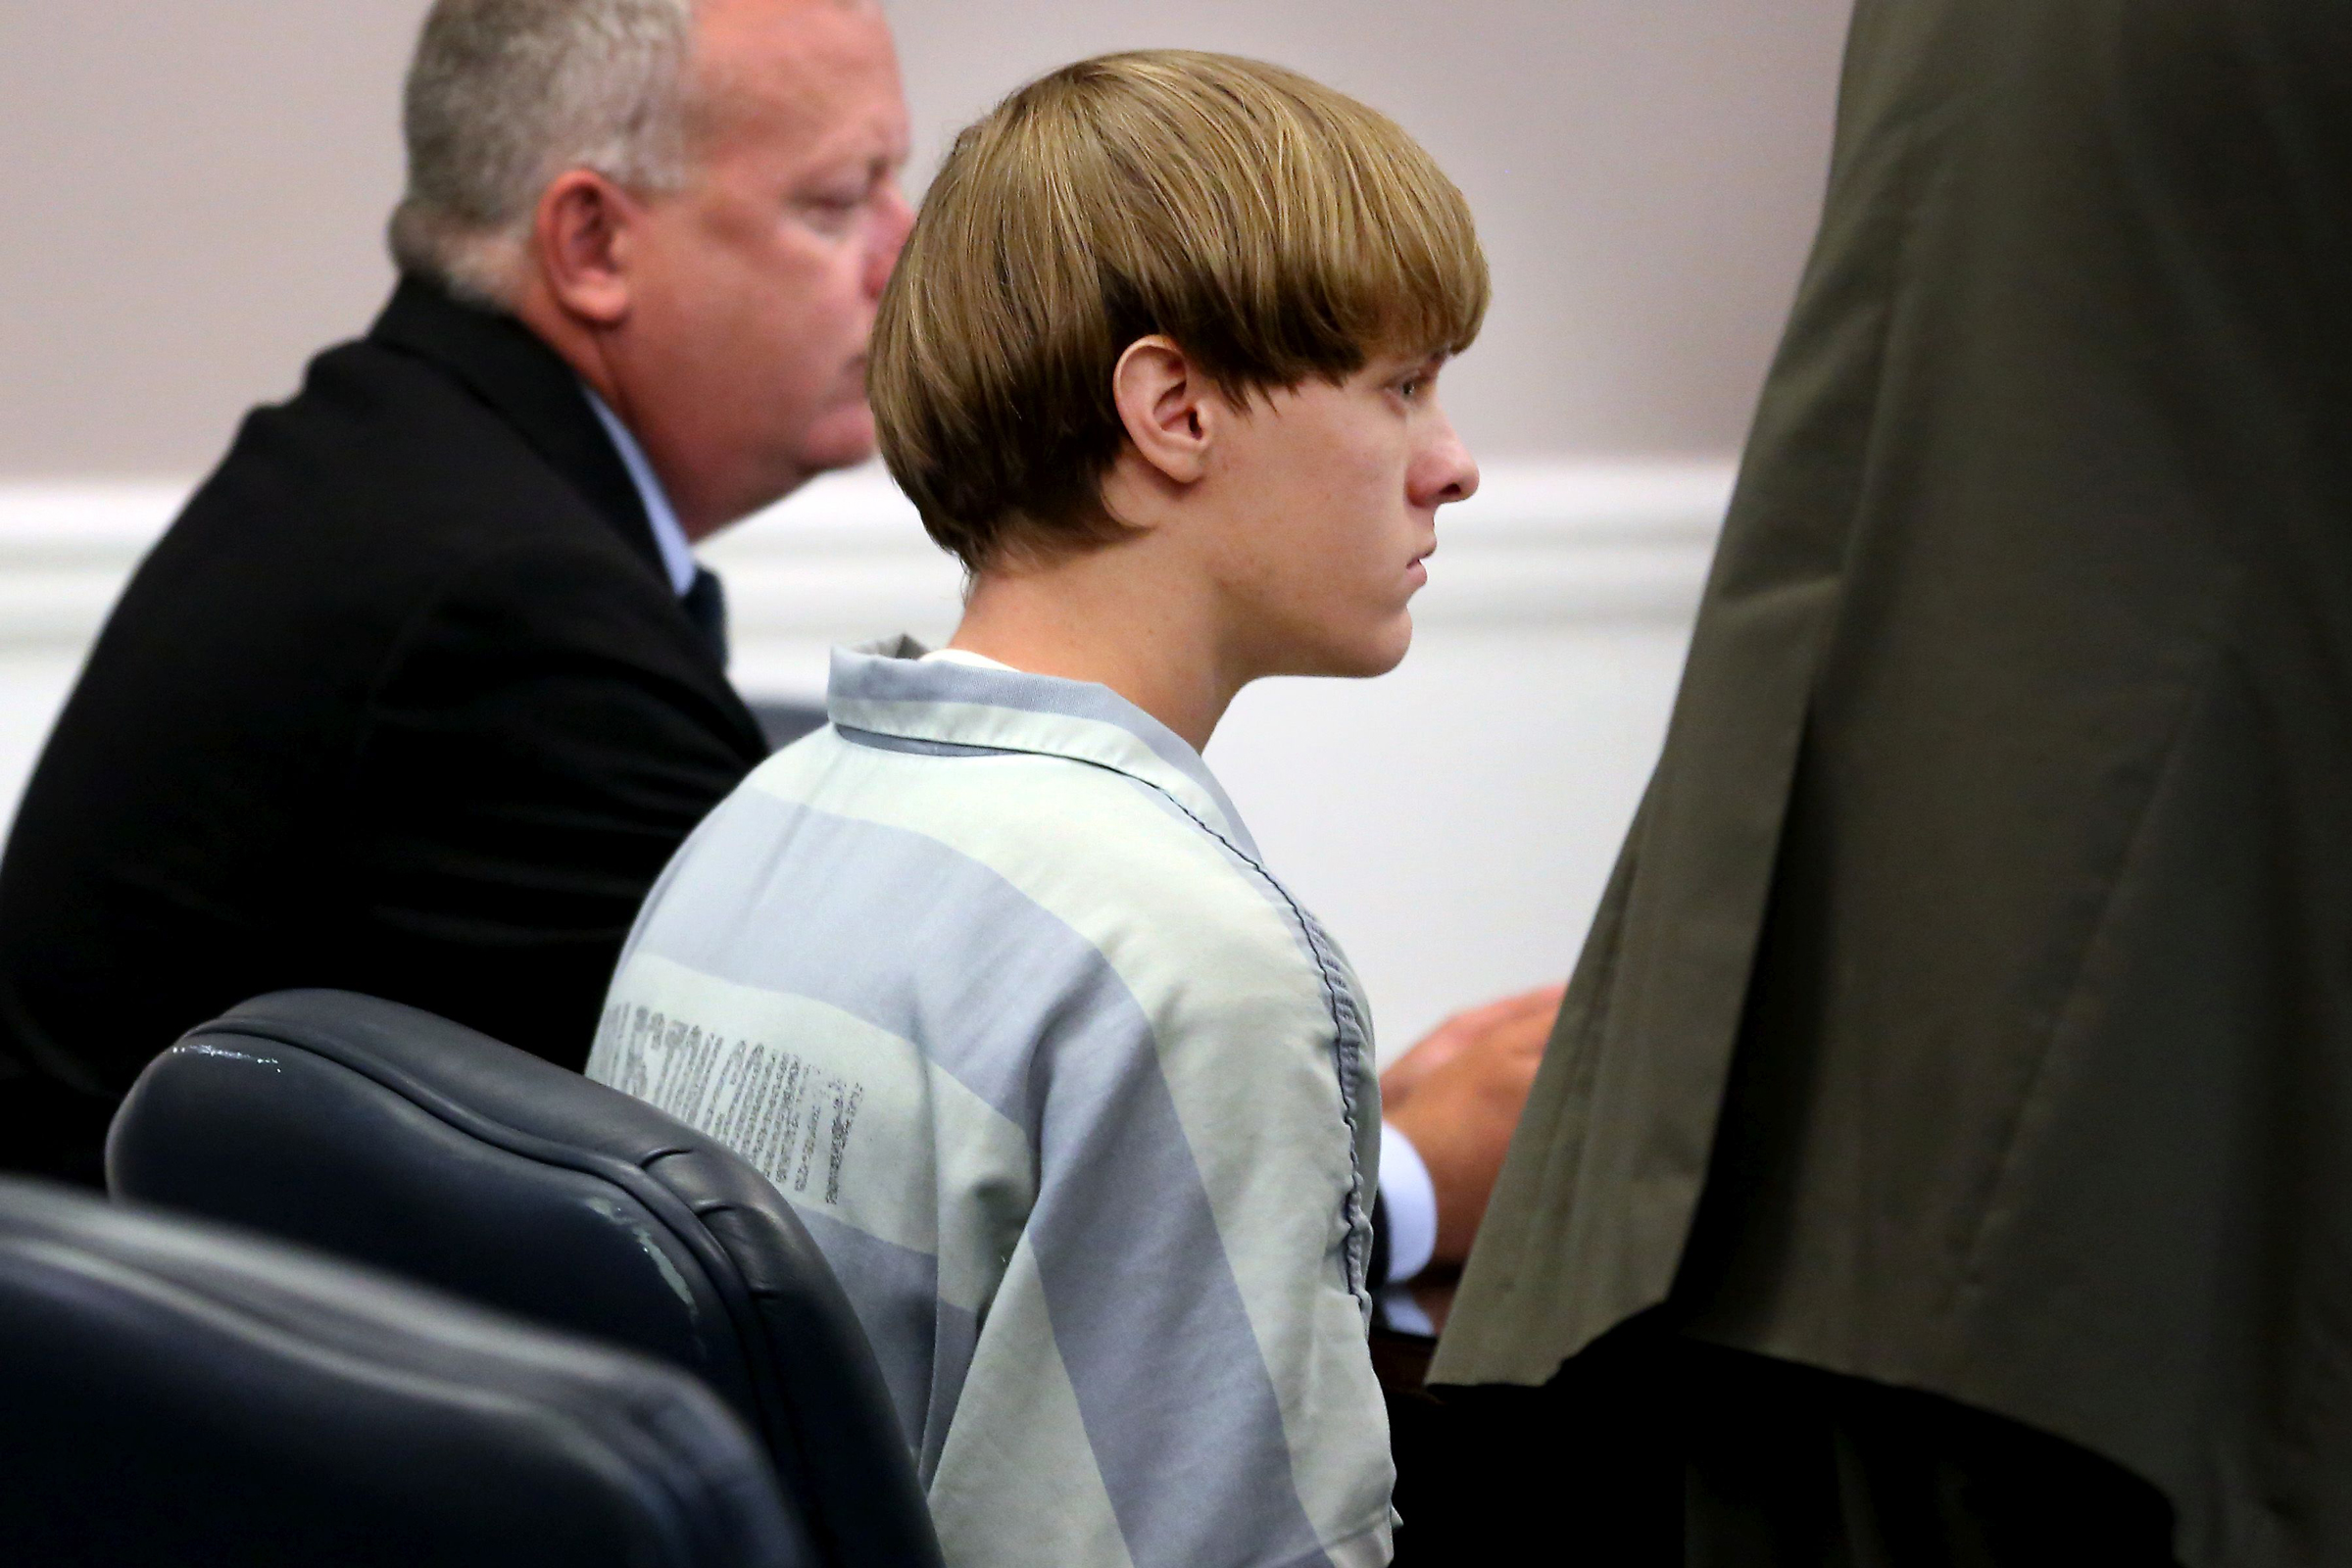 How A White Supremacist S Haircut Became A Symbol For Hate Rolling Stone